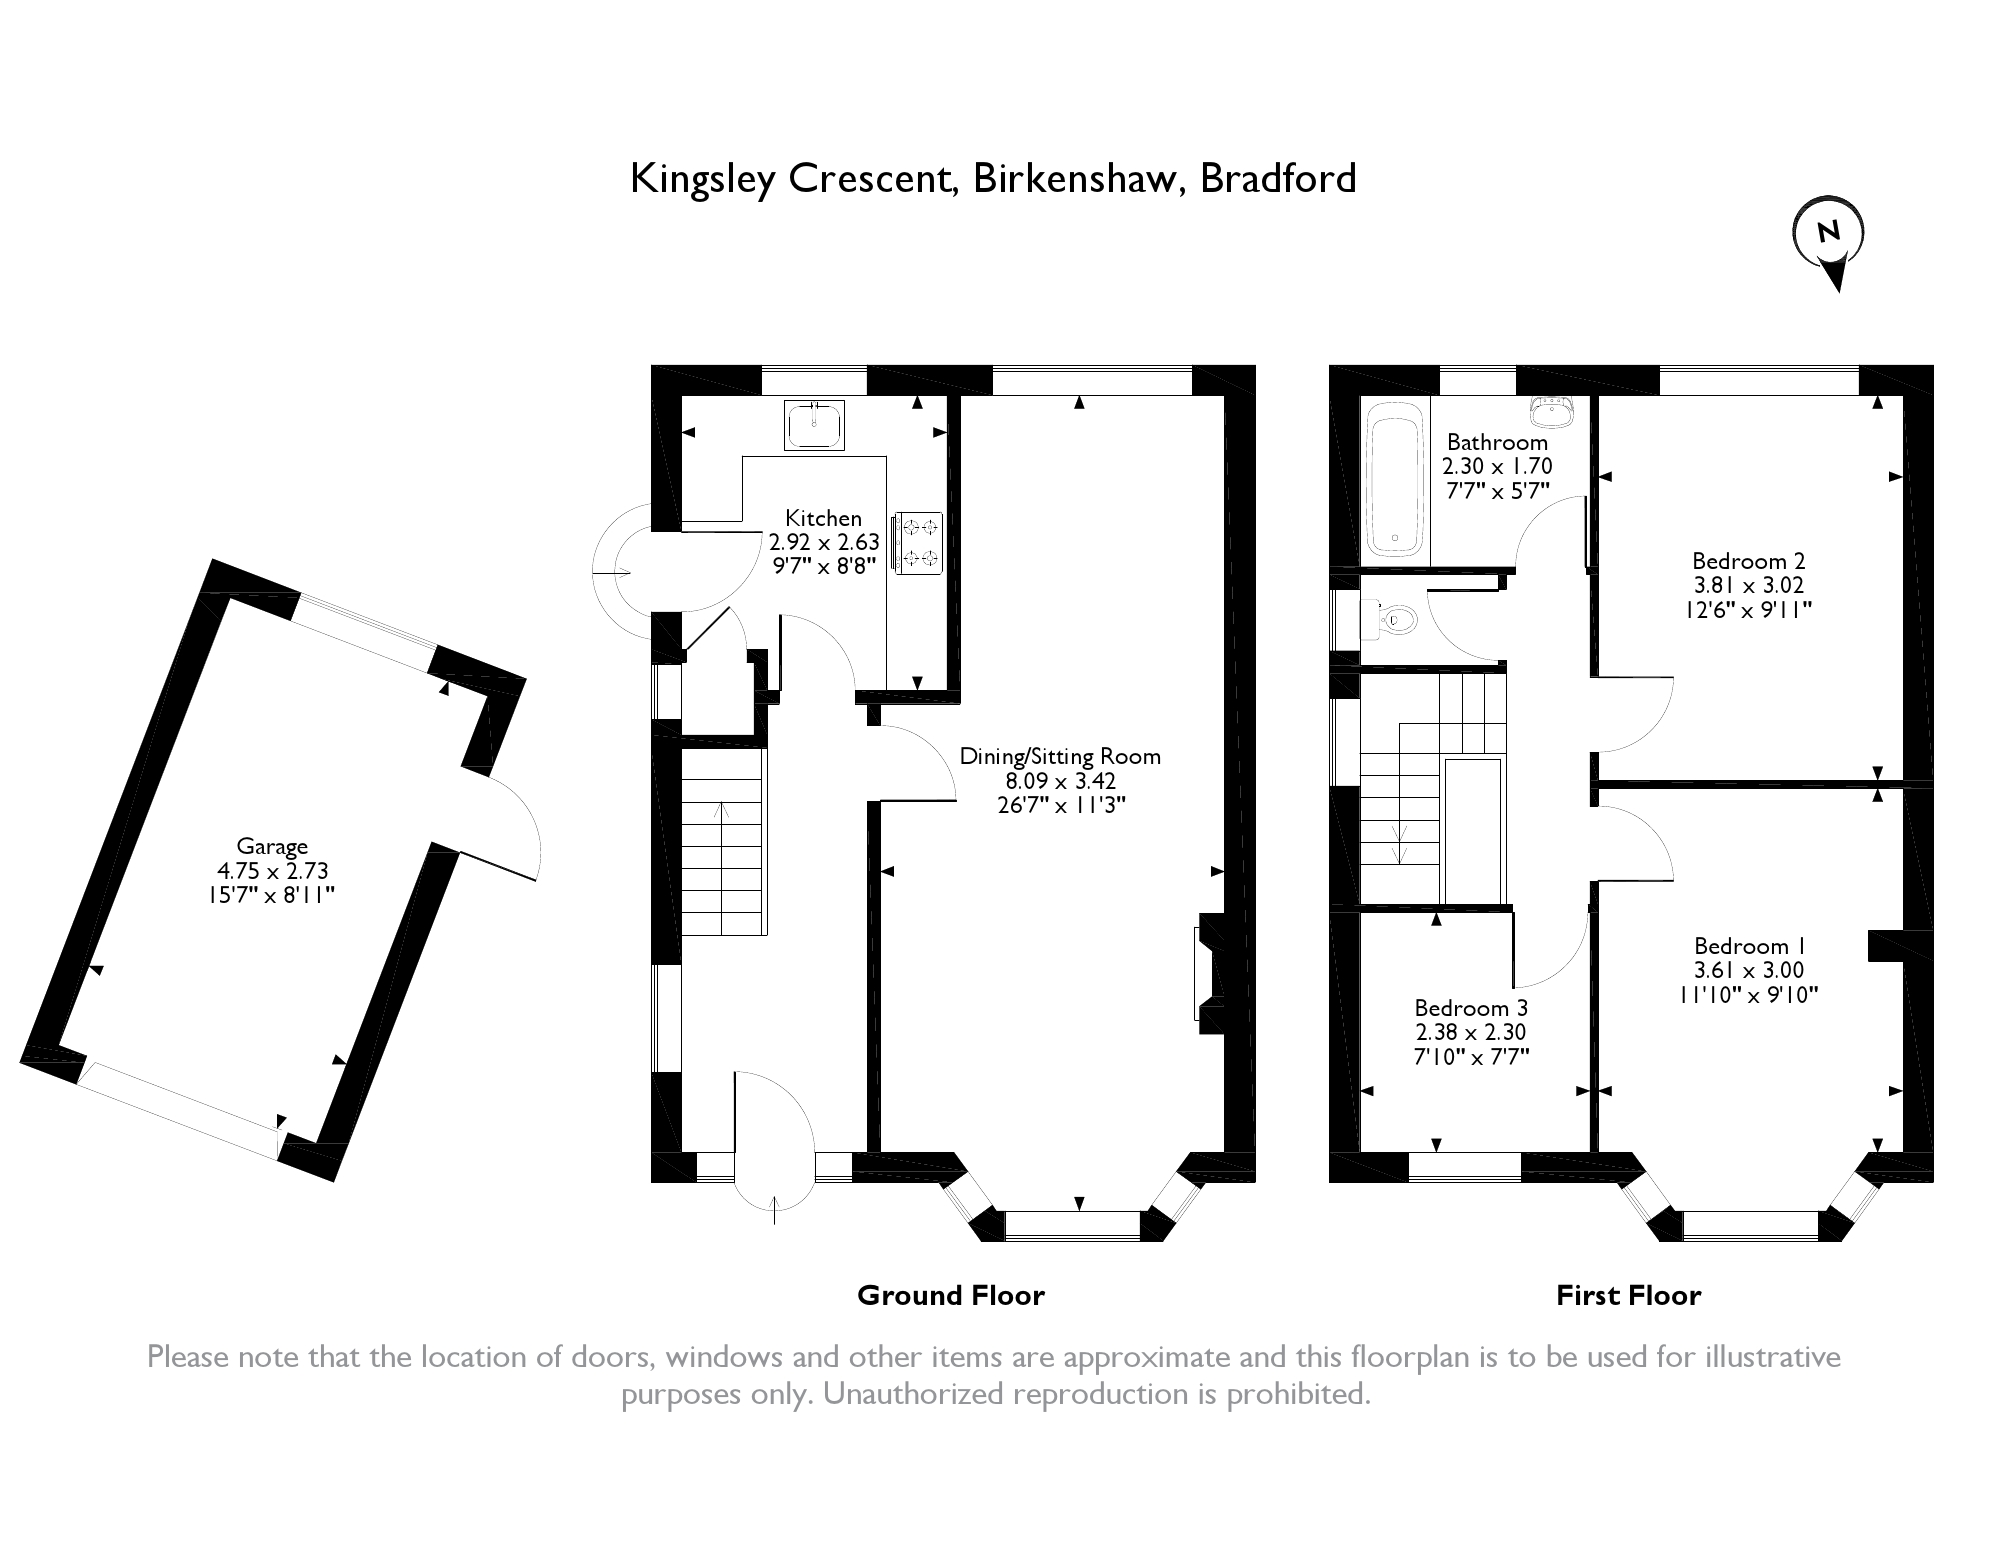 Kingsley Crescent, Birkenshaw, BD11 floor plan